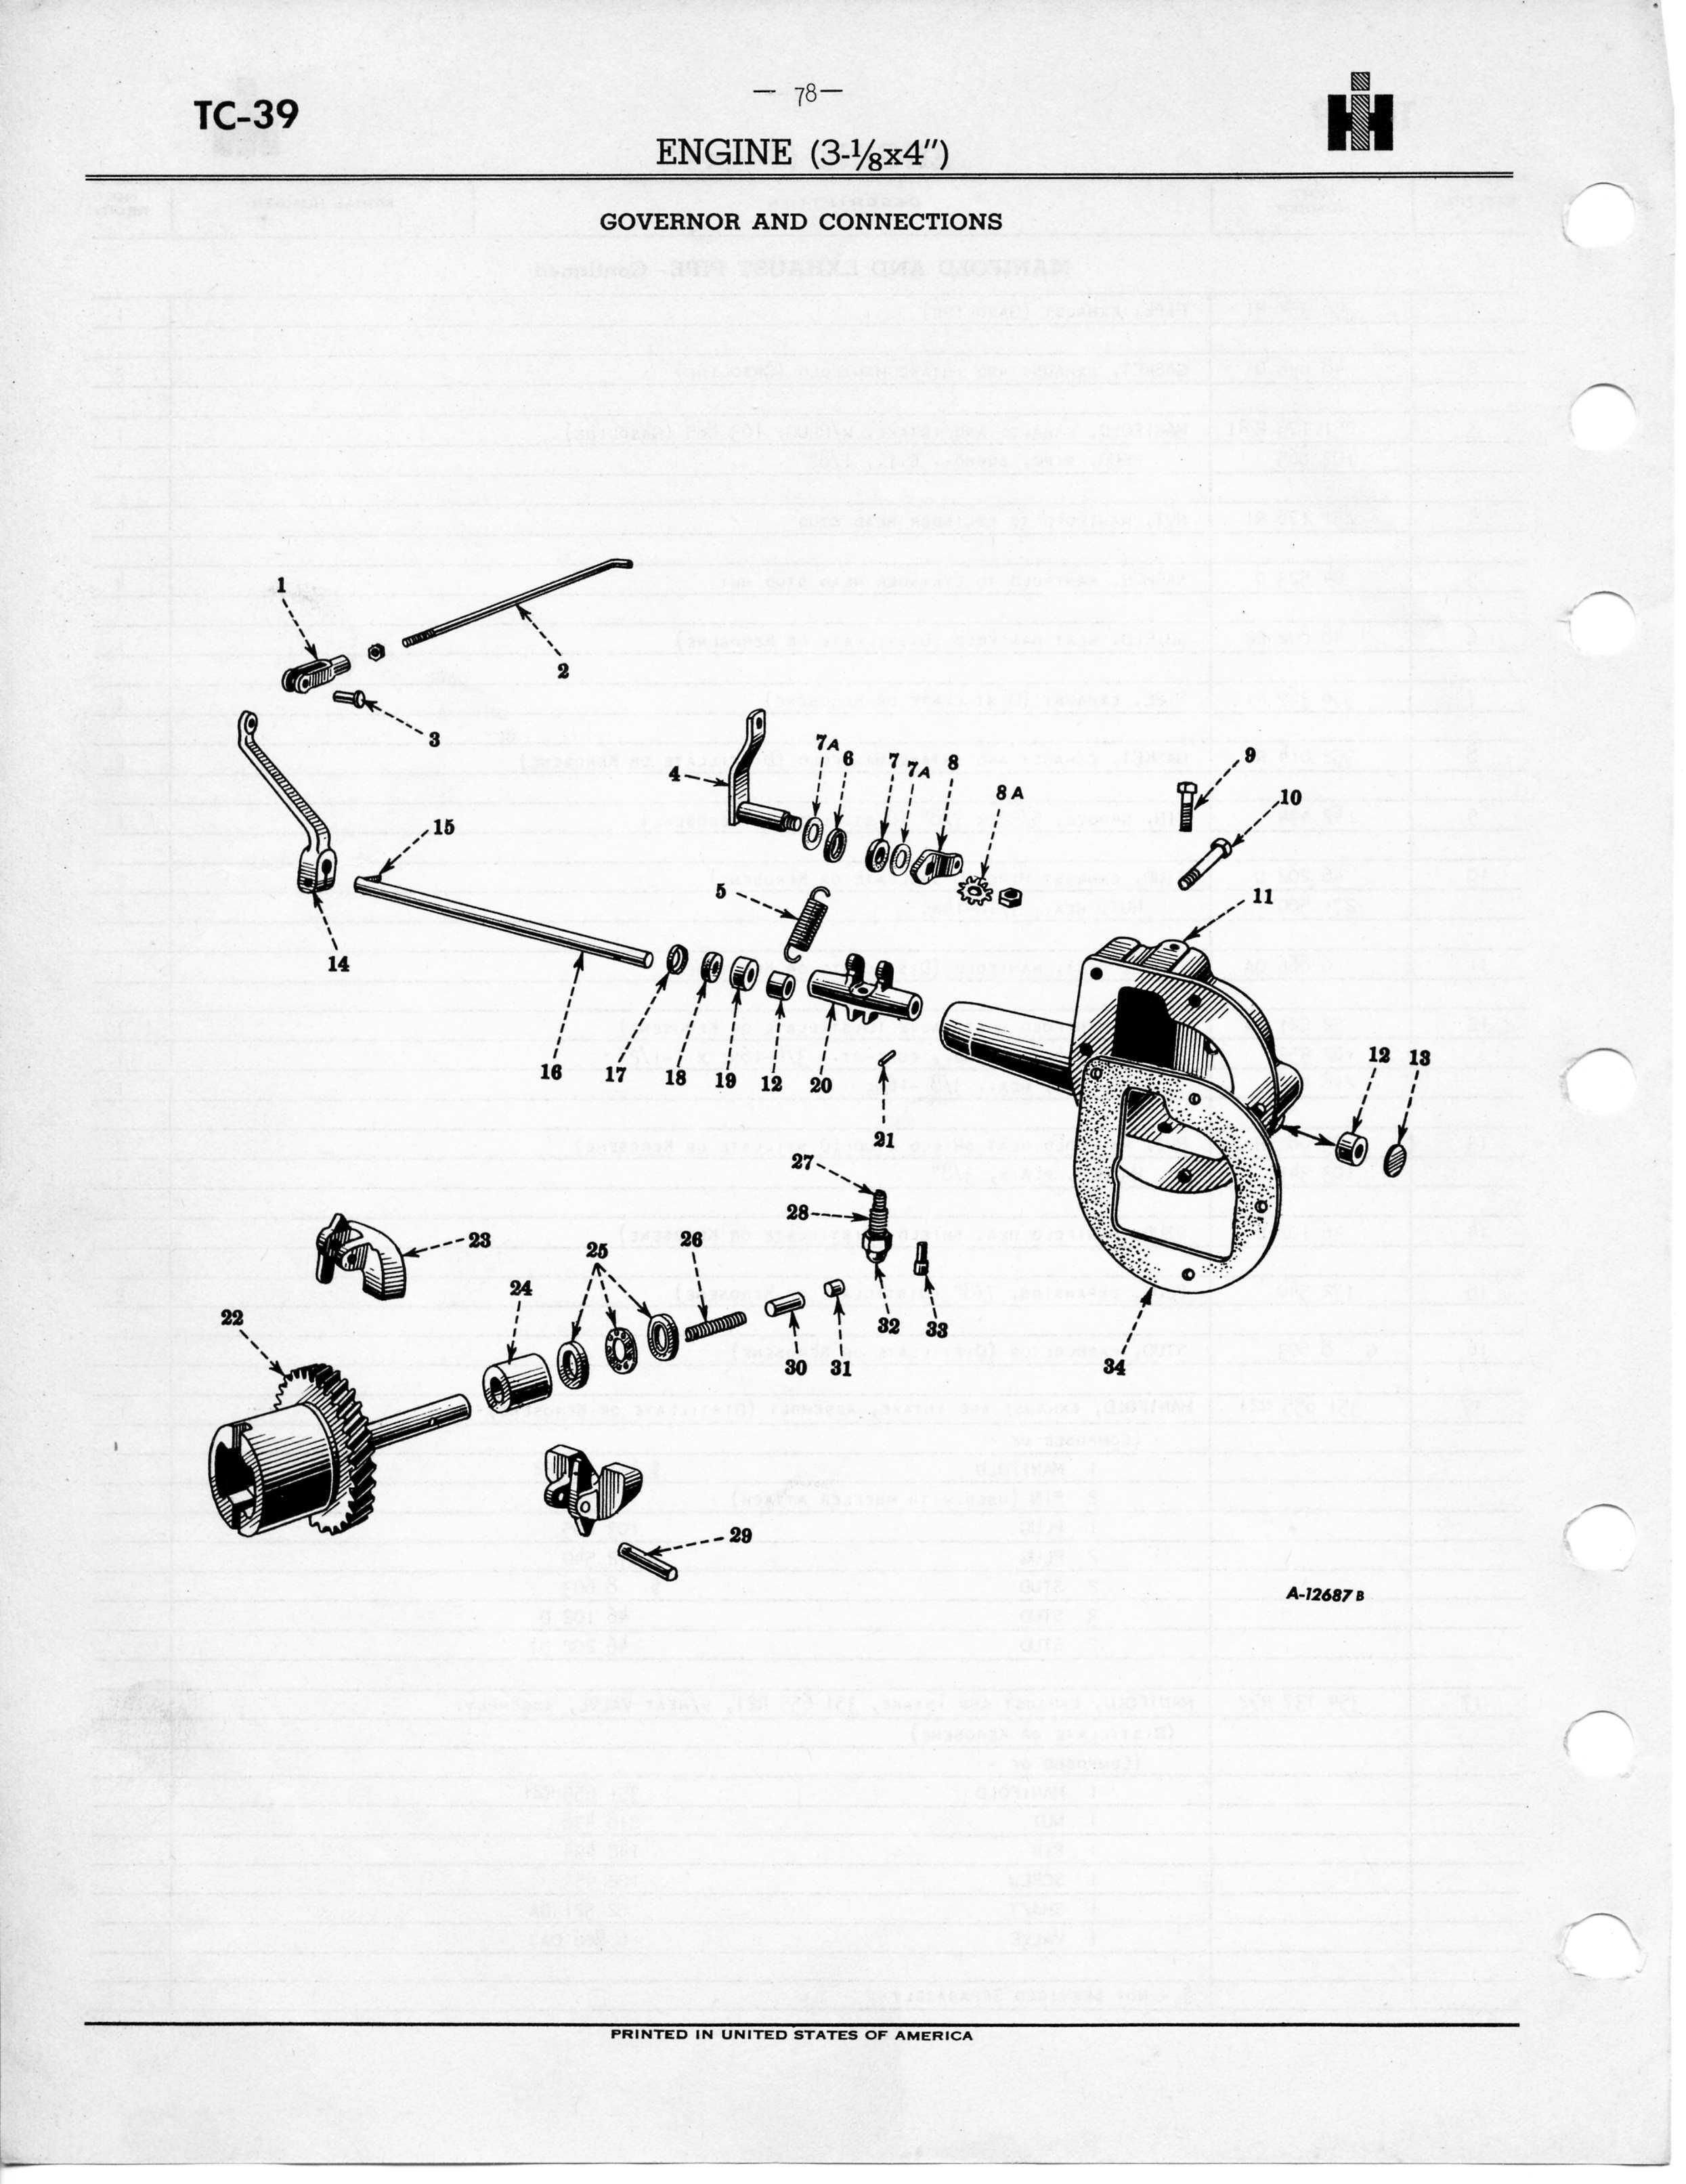 h farmall governor part diagram